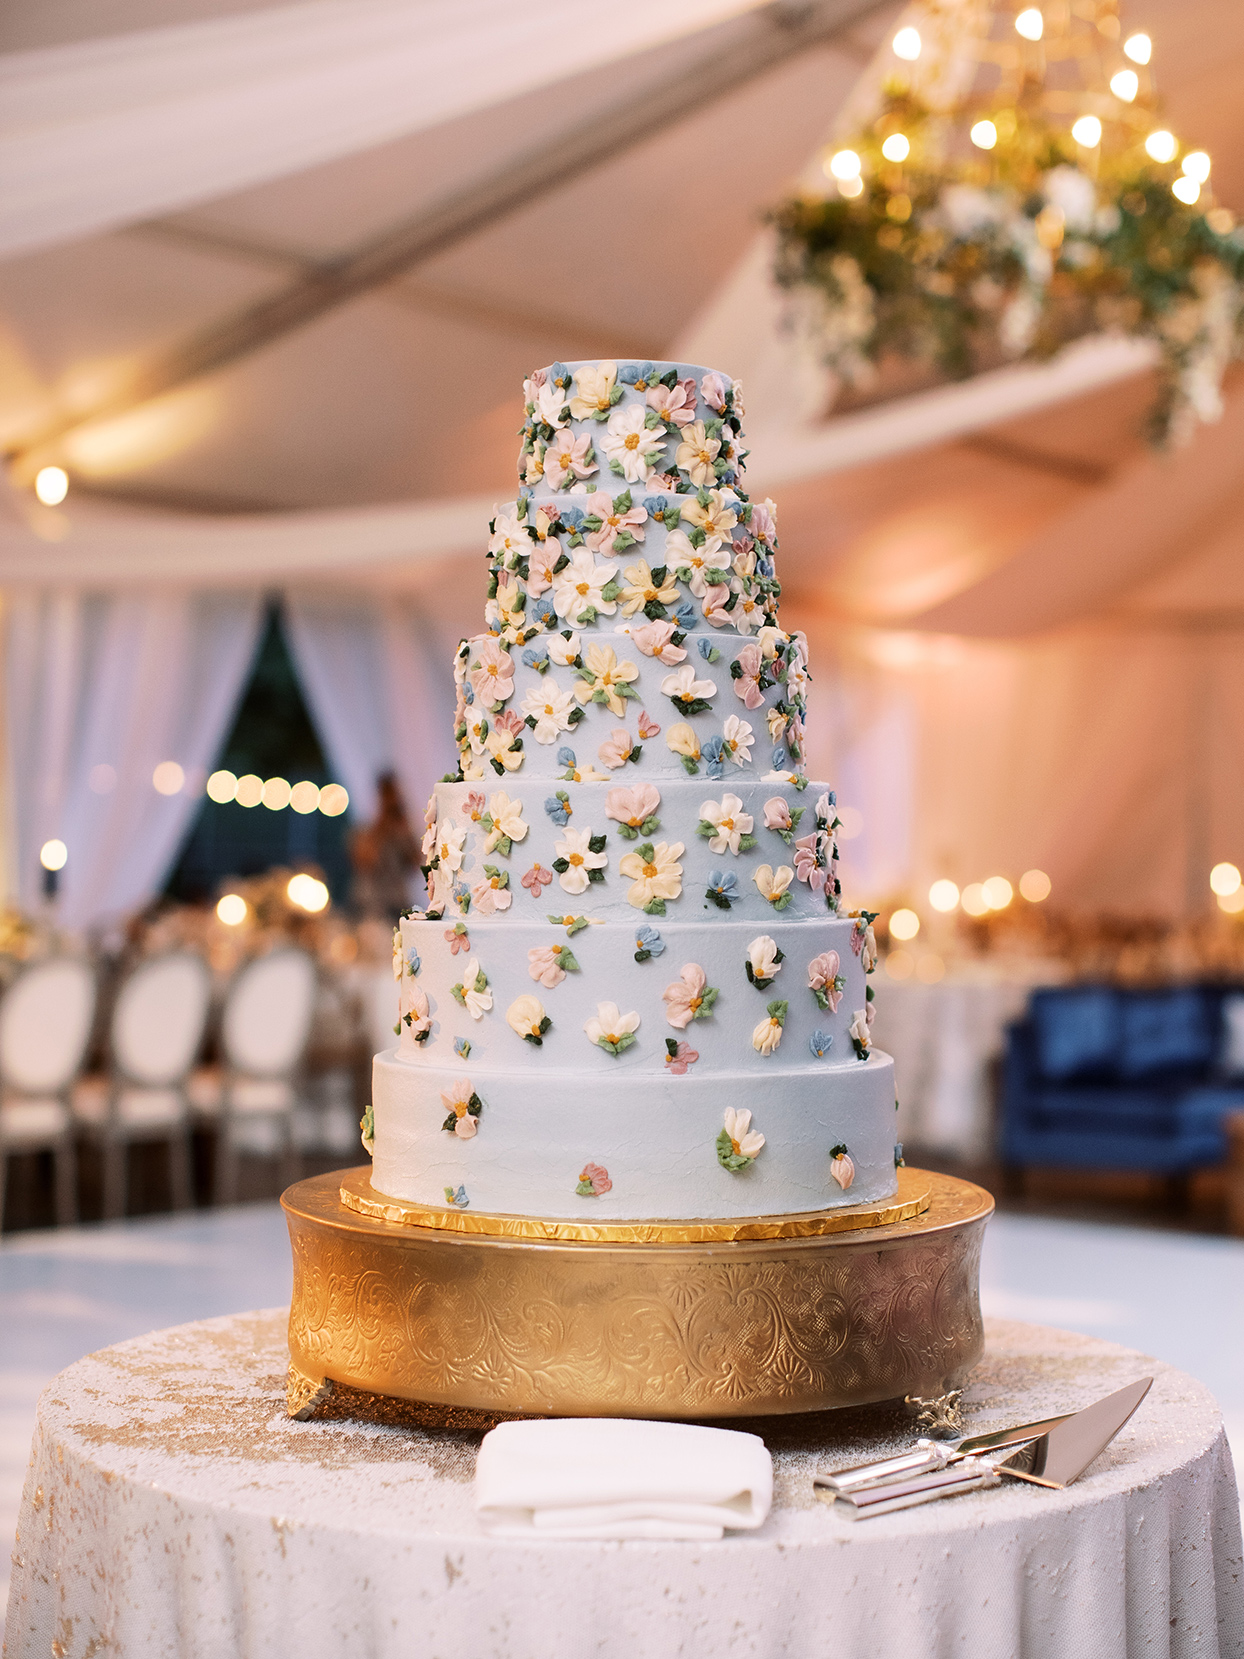 lauren chris wedding cake with floral decorations on gold stand